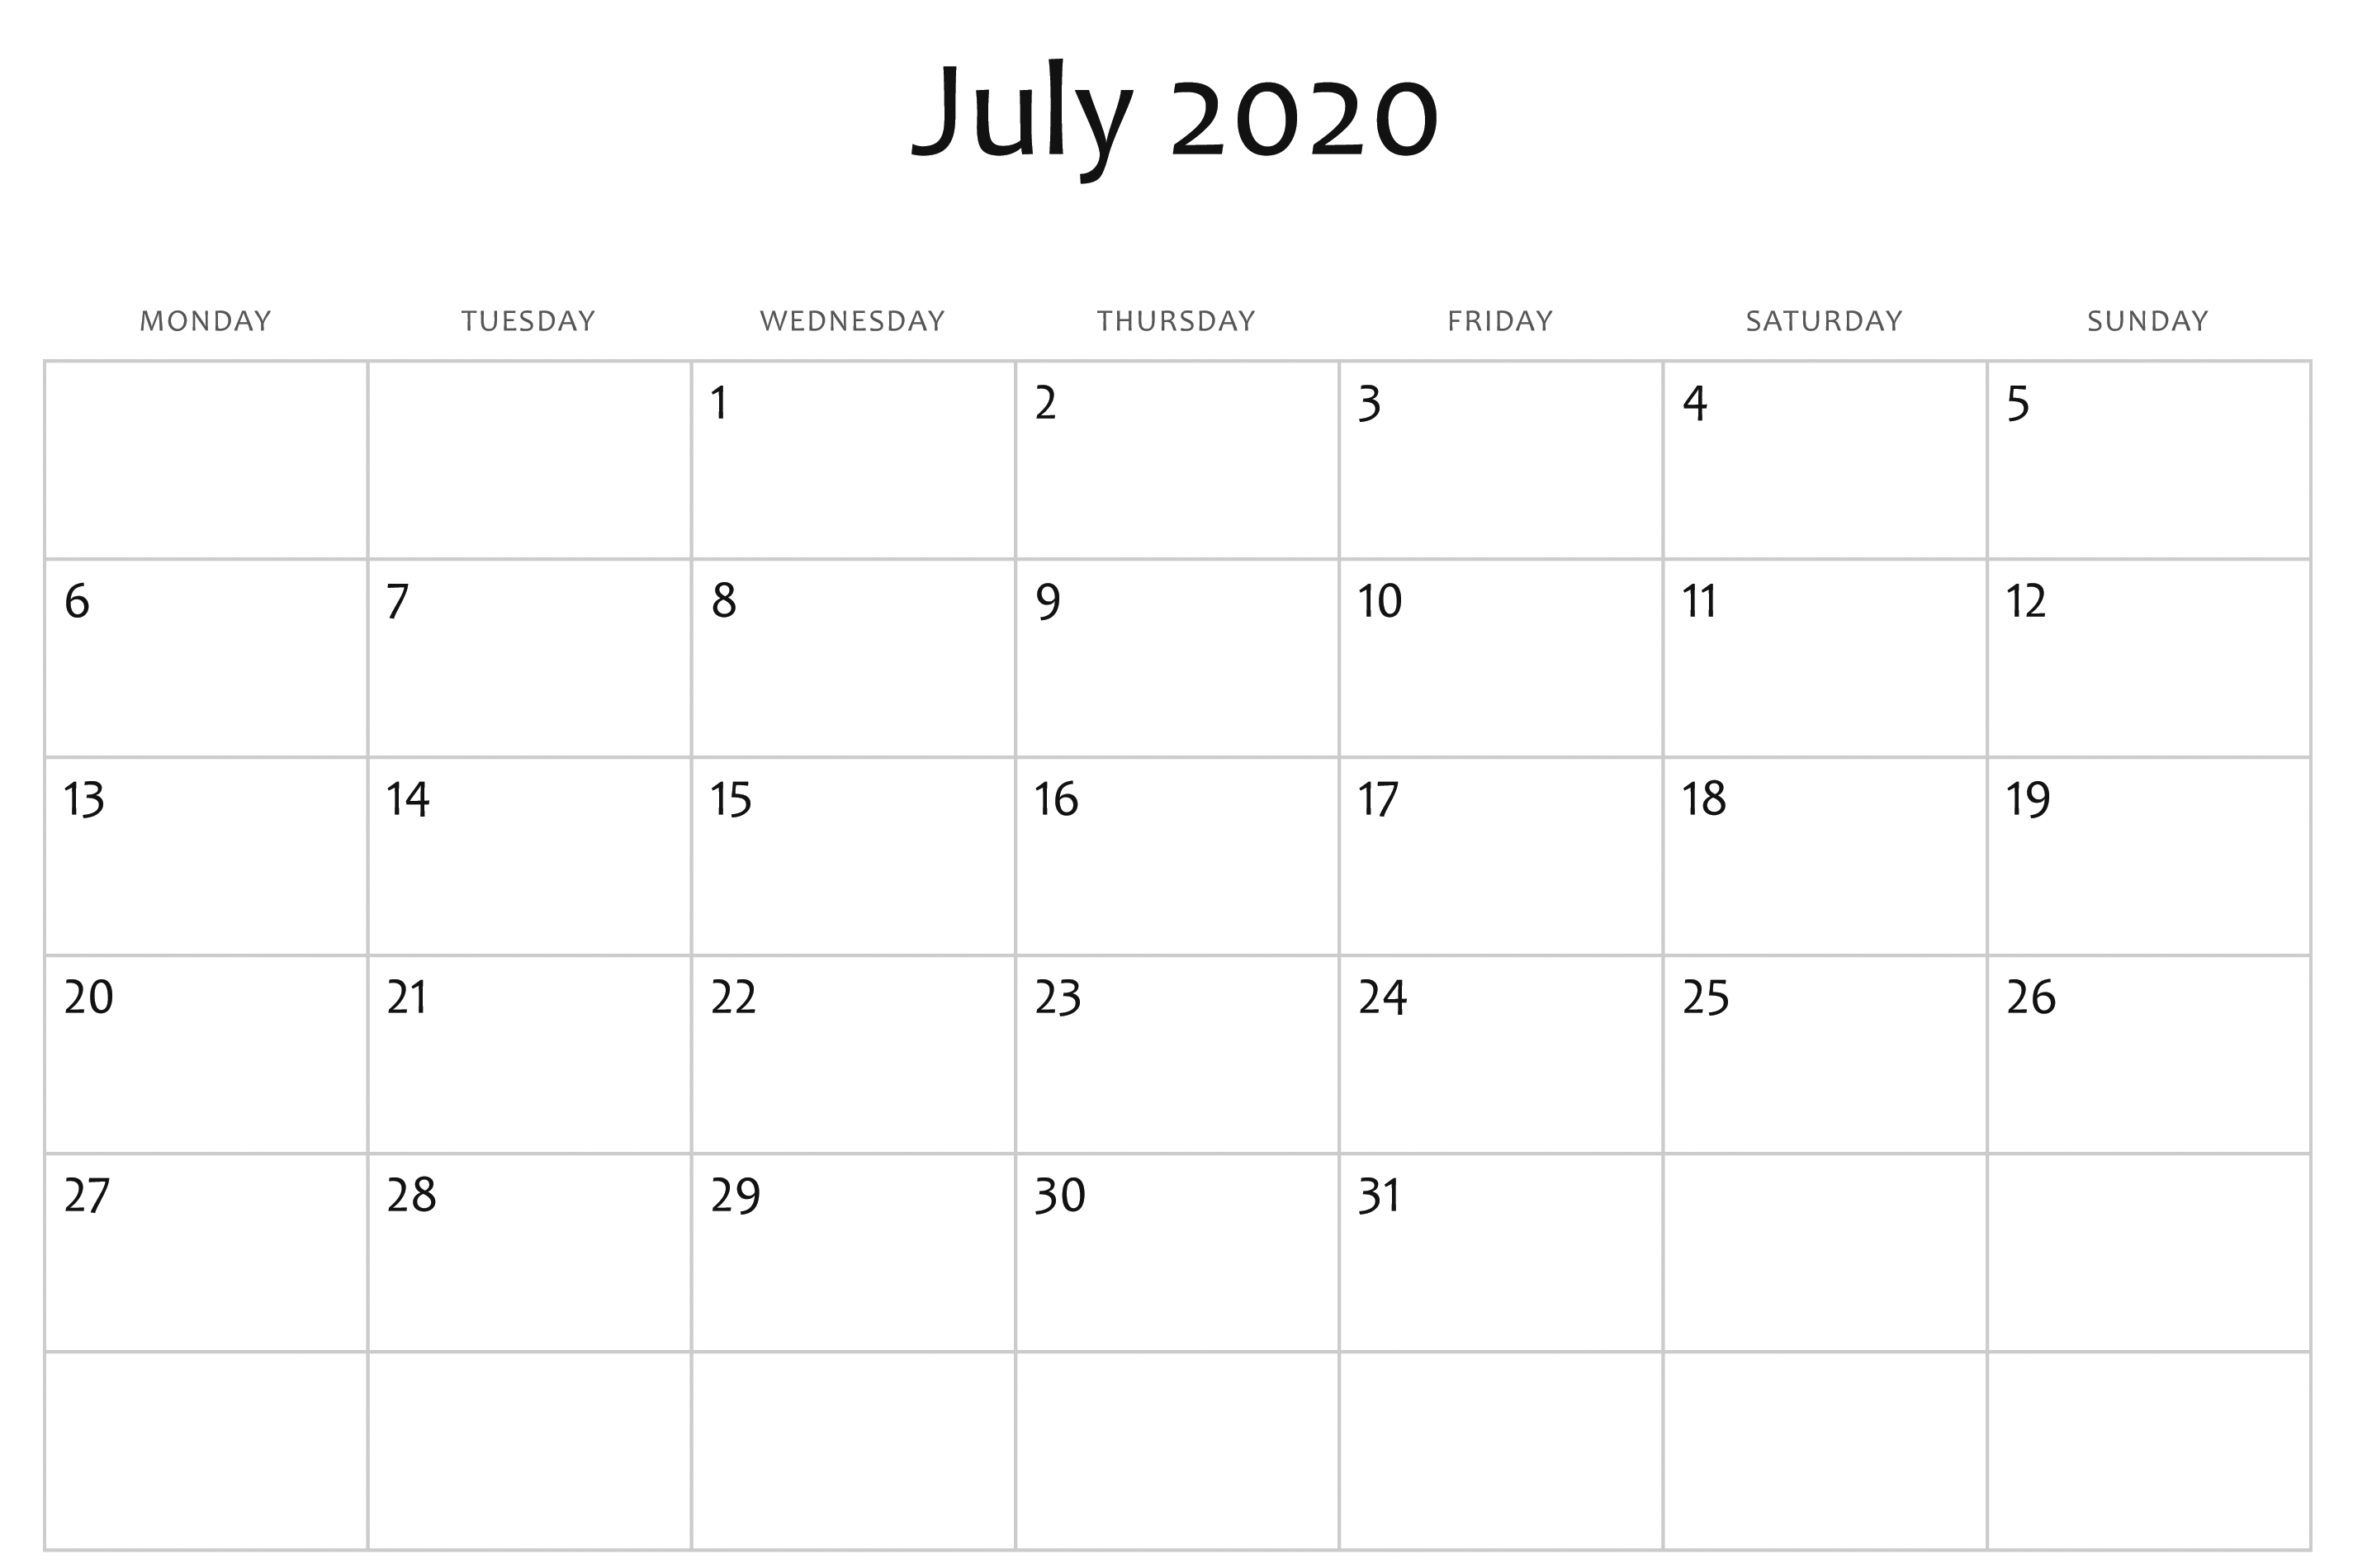 2020 Calendar Word Template  Bolan.horizonconsulting.co intended for Word Calendar Template 2020